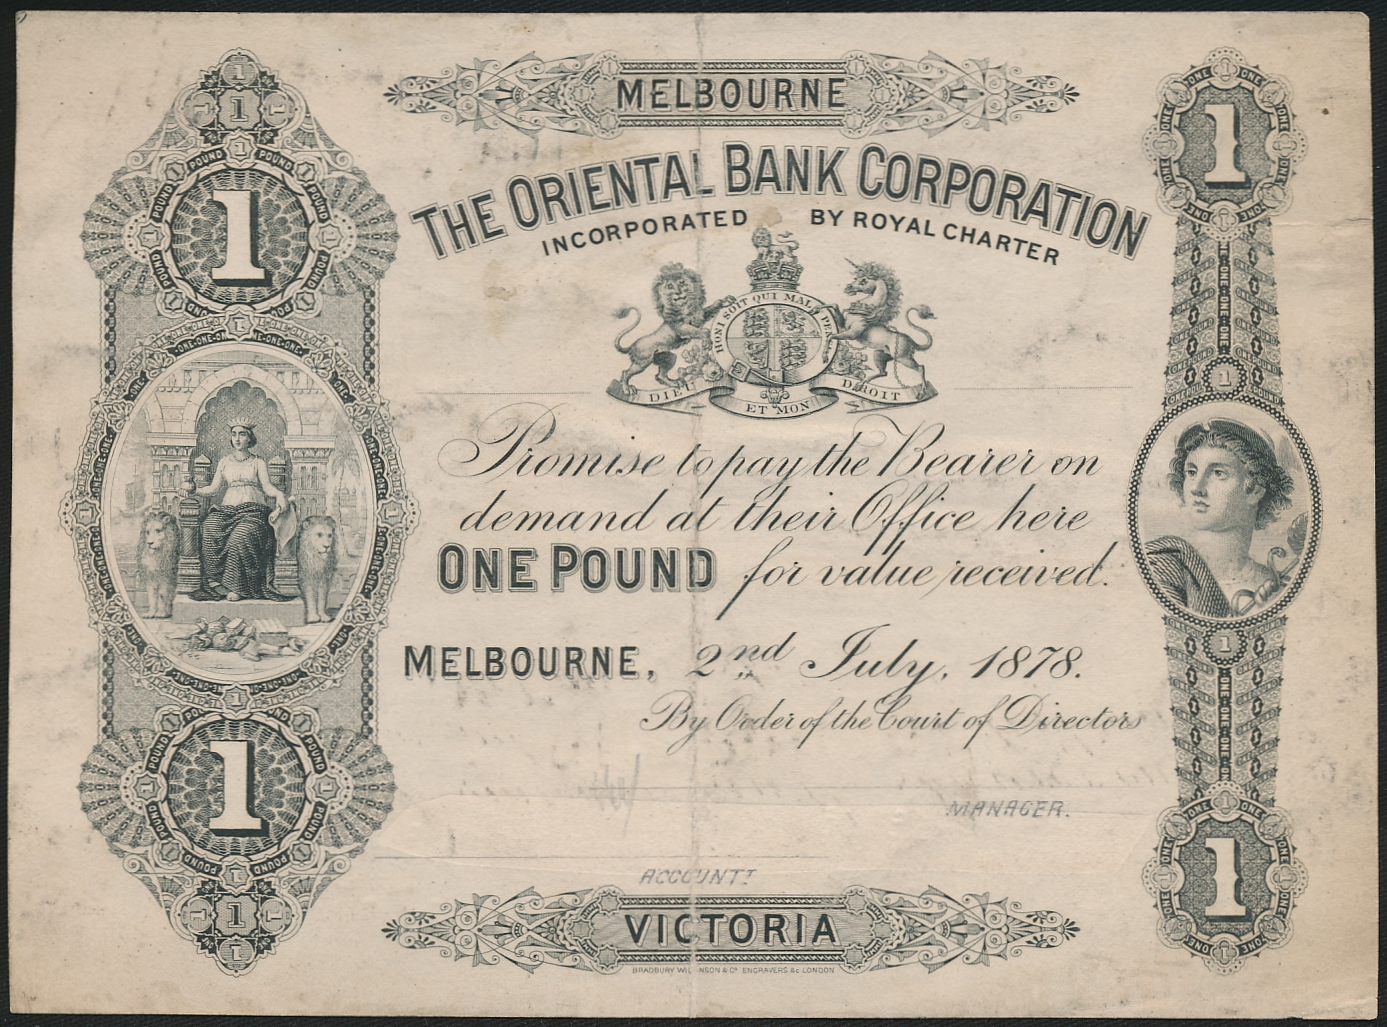 Australia-1878-Oriental-Bank-Corporation-Melbourne-1-Cat-27-000-RARE